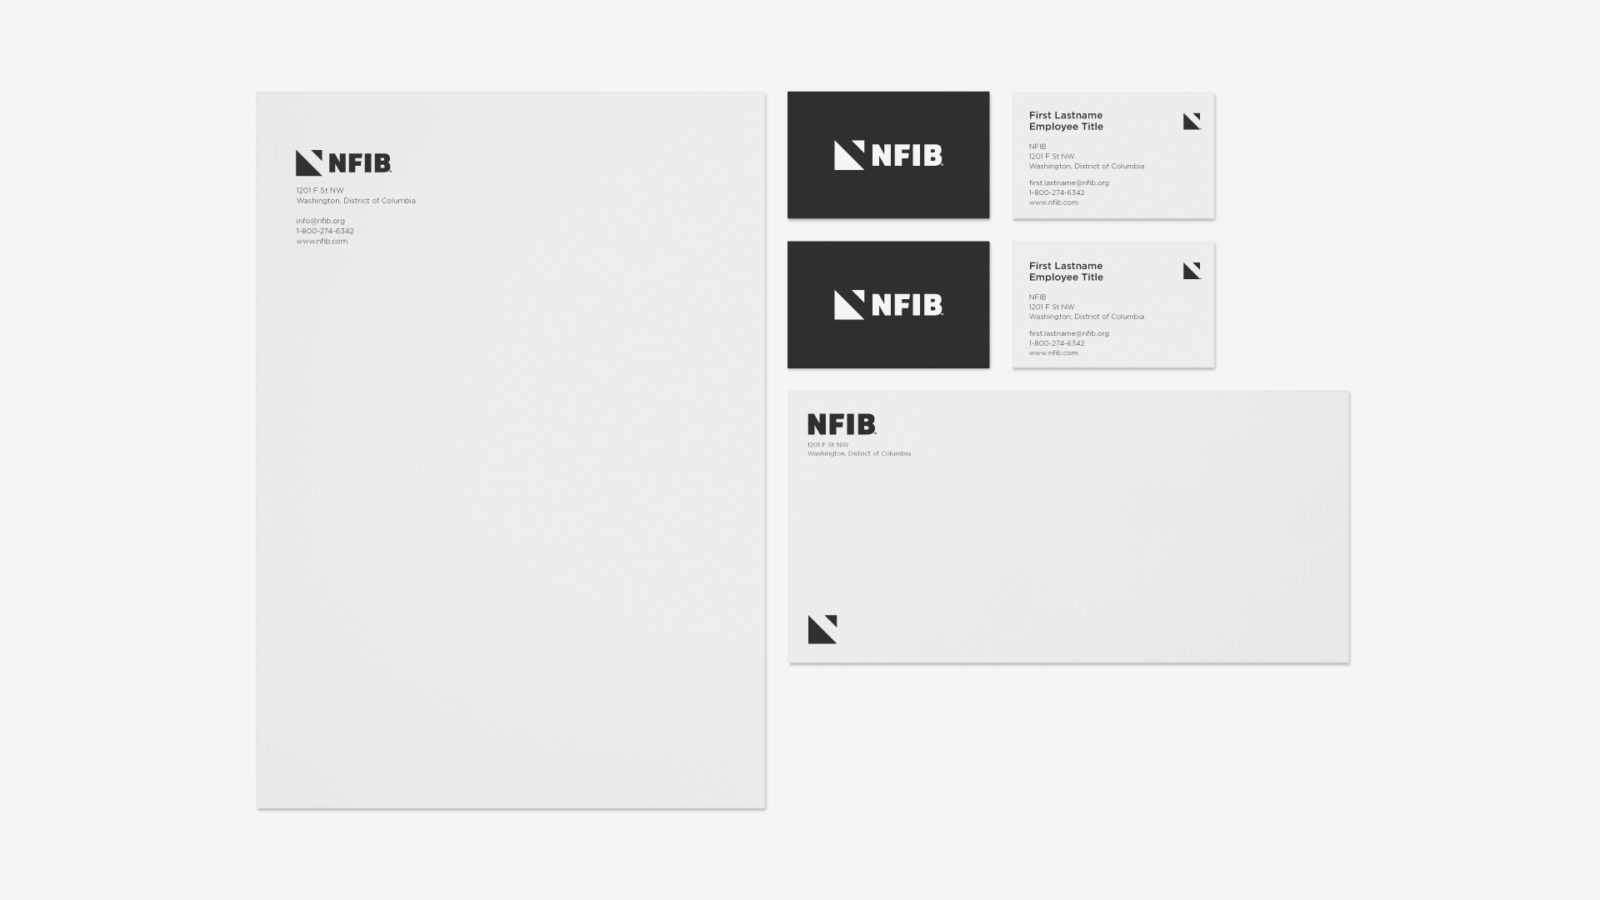 NFIB Independent and Small Business Association Branding and Strategy Stationery